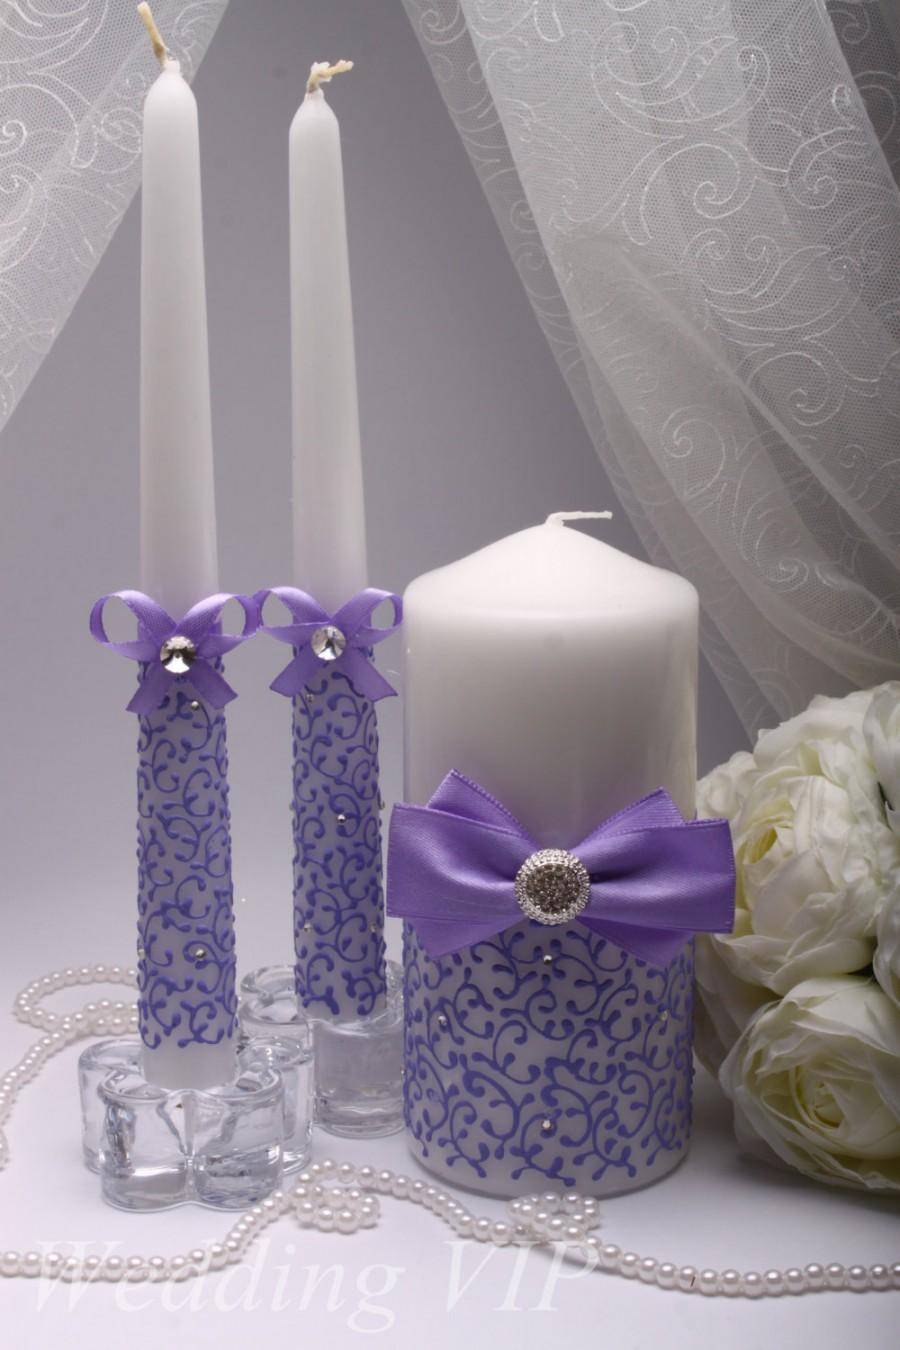 Unity Candles Lilac Hand Painted Candle Wedding Ceremony Set Personalized Lavender